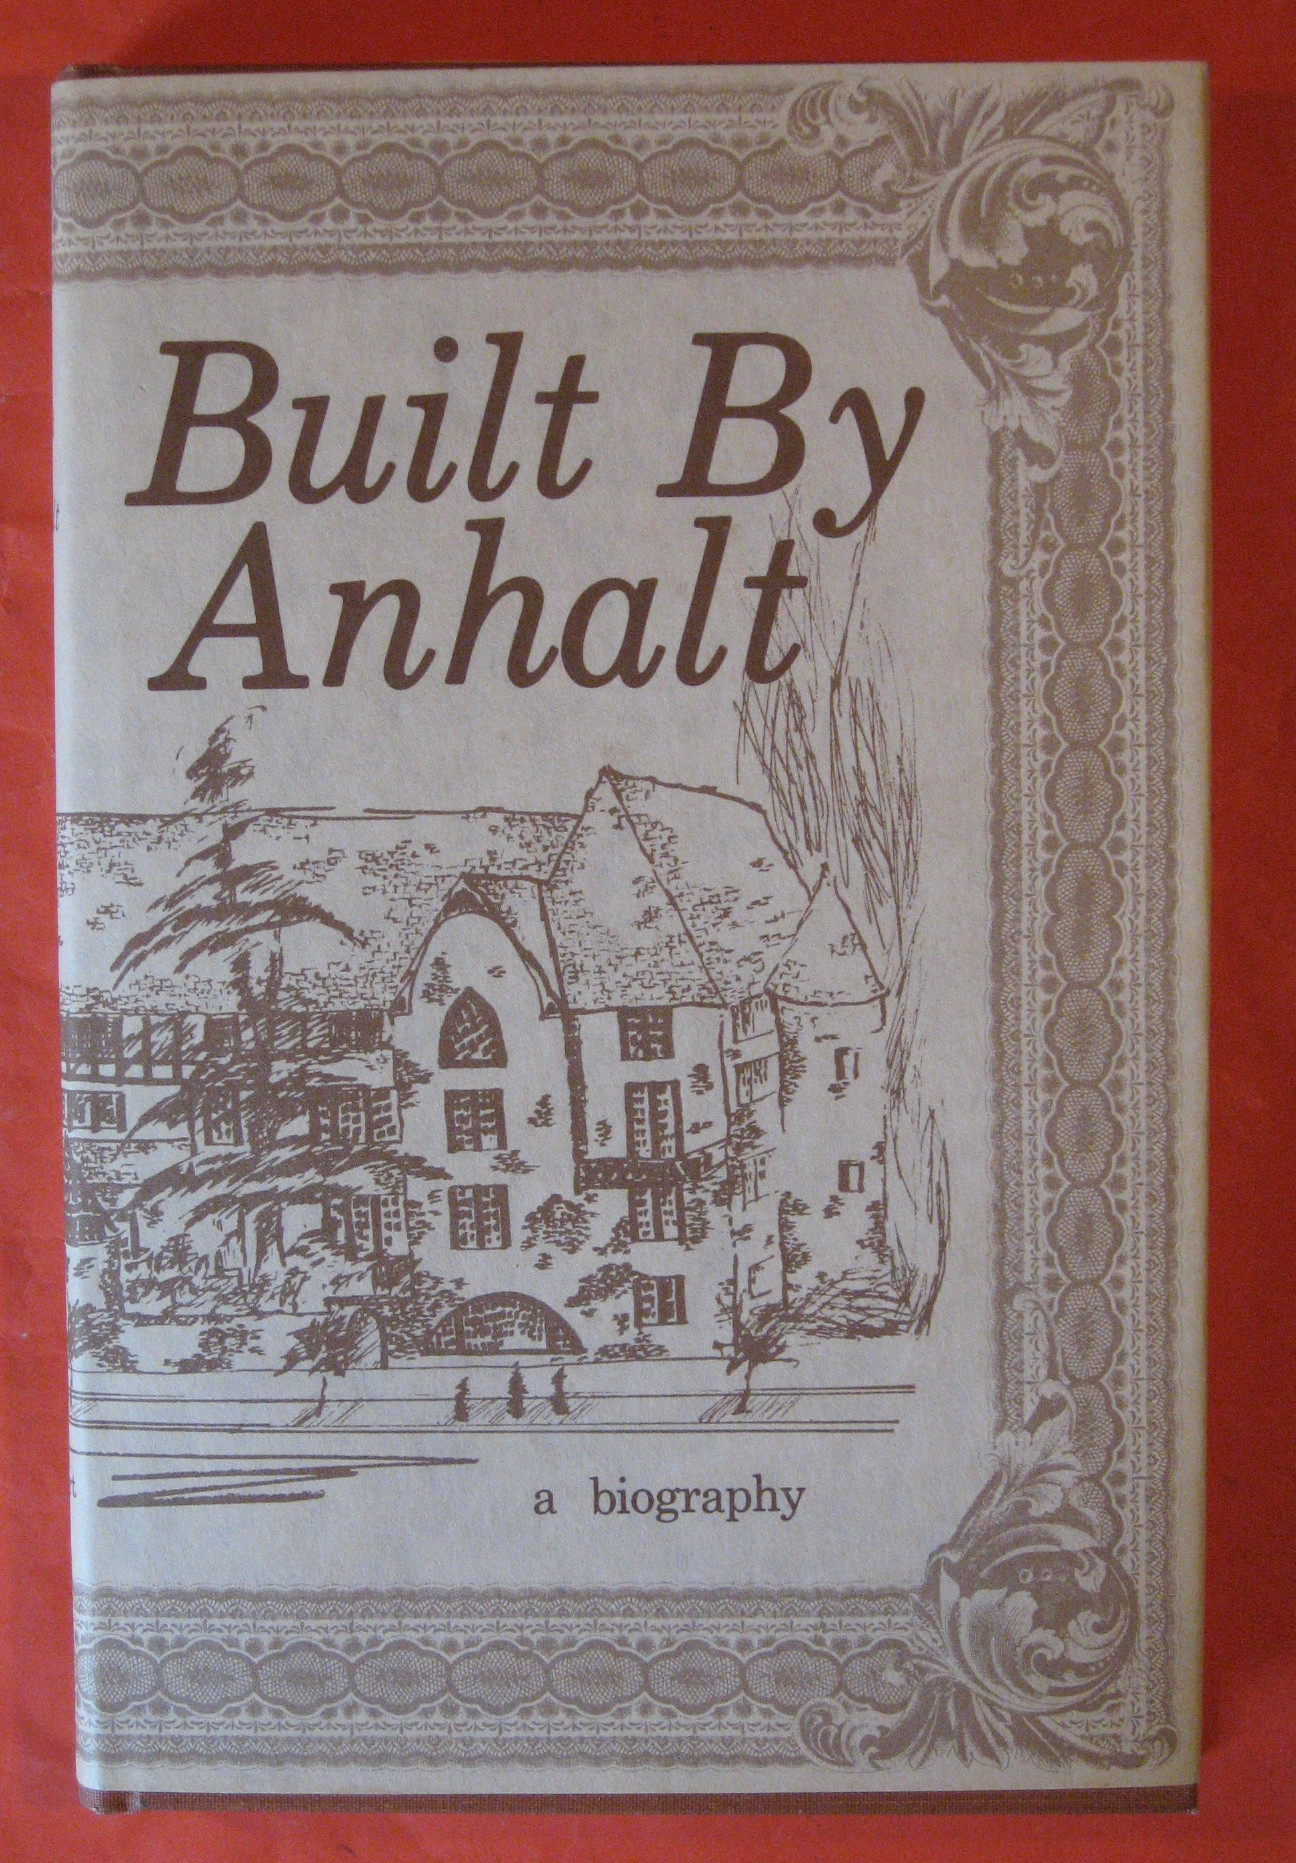 Built by Anhalt Based on Tapes and Covnersations with Frederick William Anhalt, Lambert, Steve